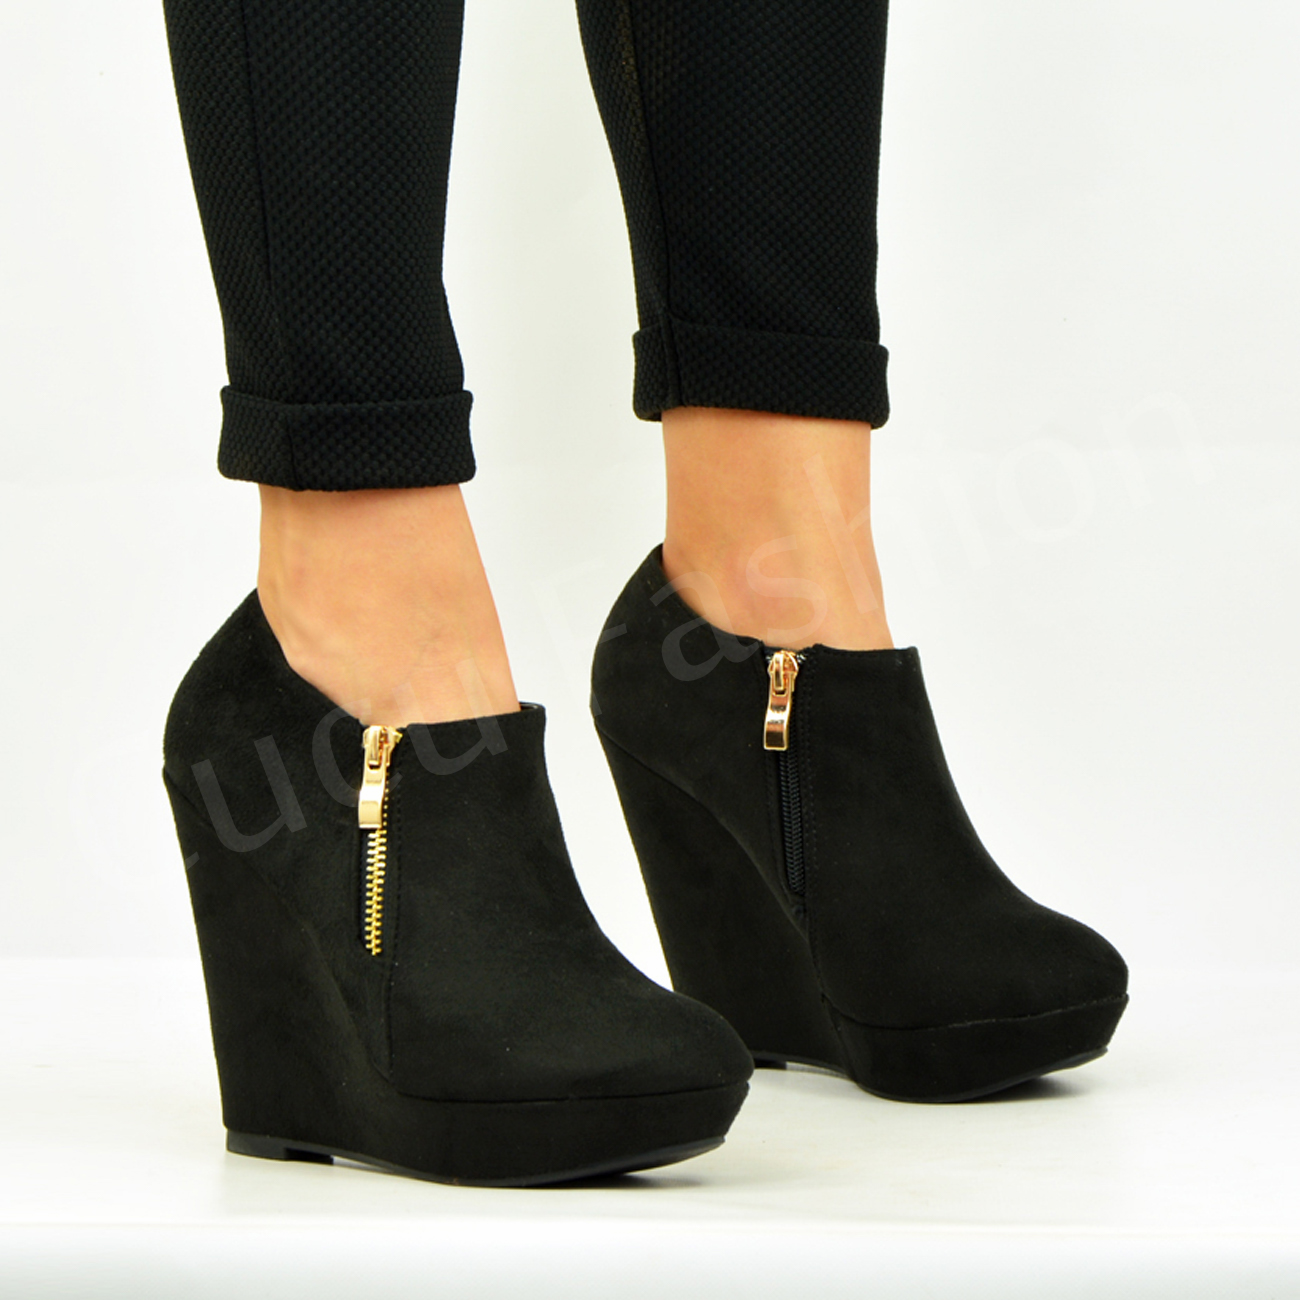 Free shipping on women's booties at hereaupy06.gq Shop all types of ankle boots, chelsea boots, and short boots for women from the best brands including Steve Madden, Sam Edelman, Vince Camuto and more. Totally free shipping & returns.